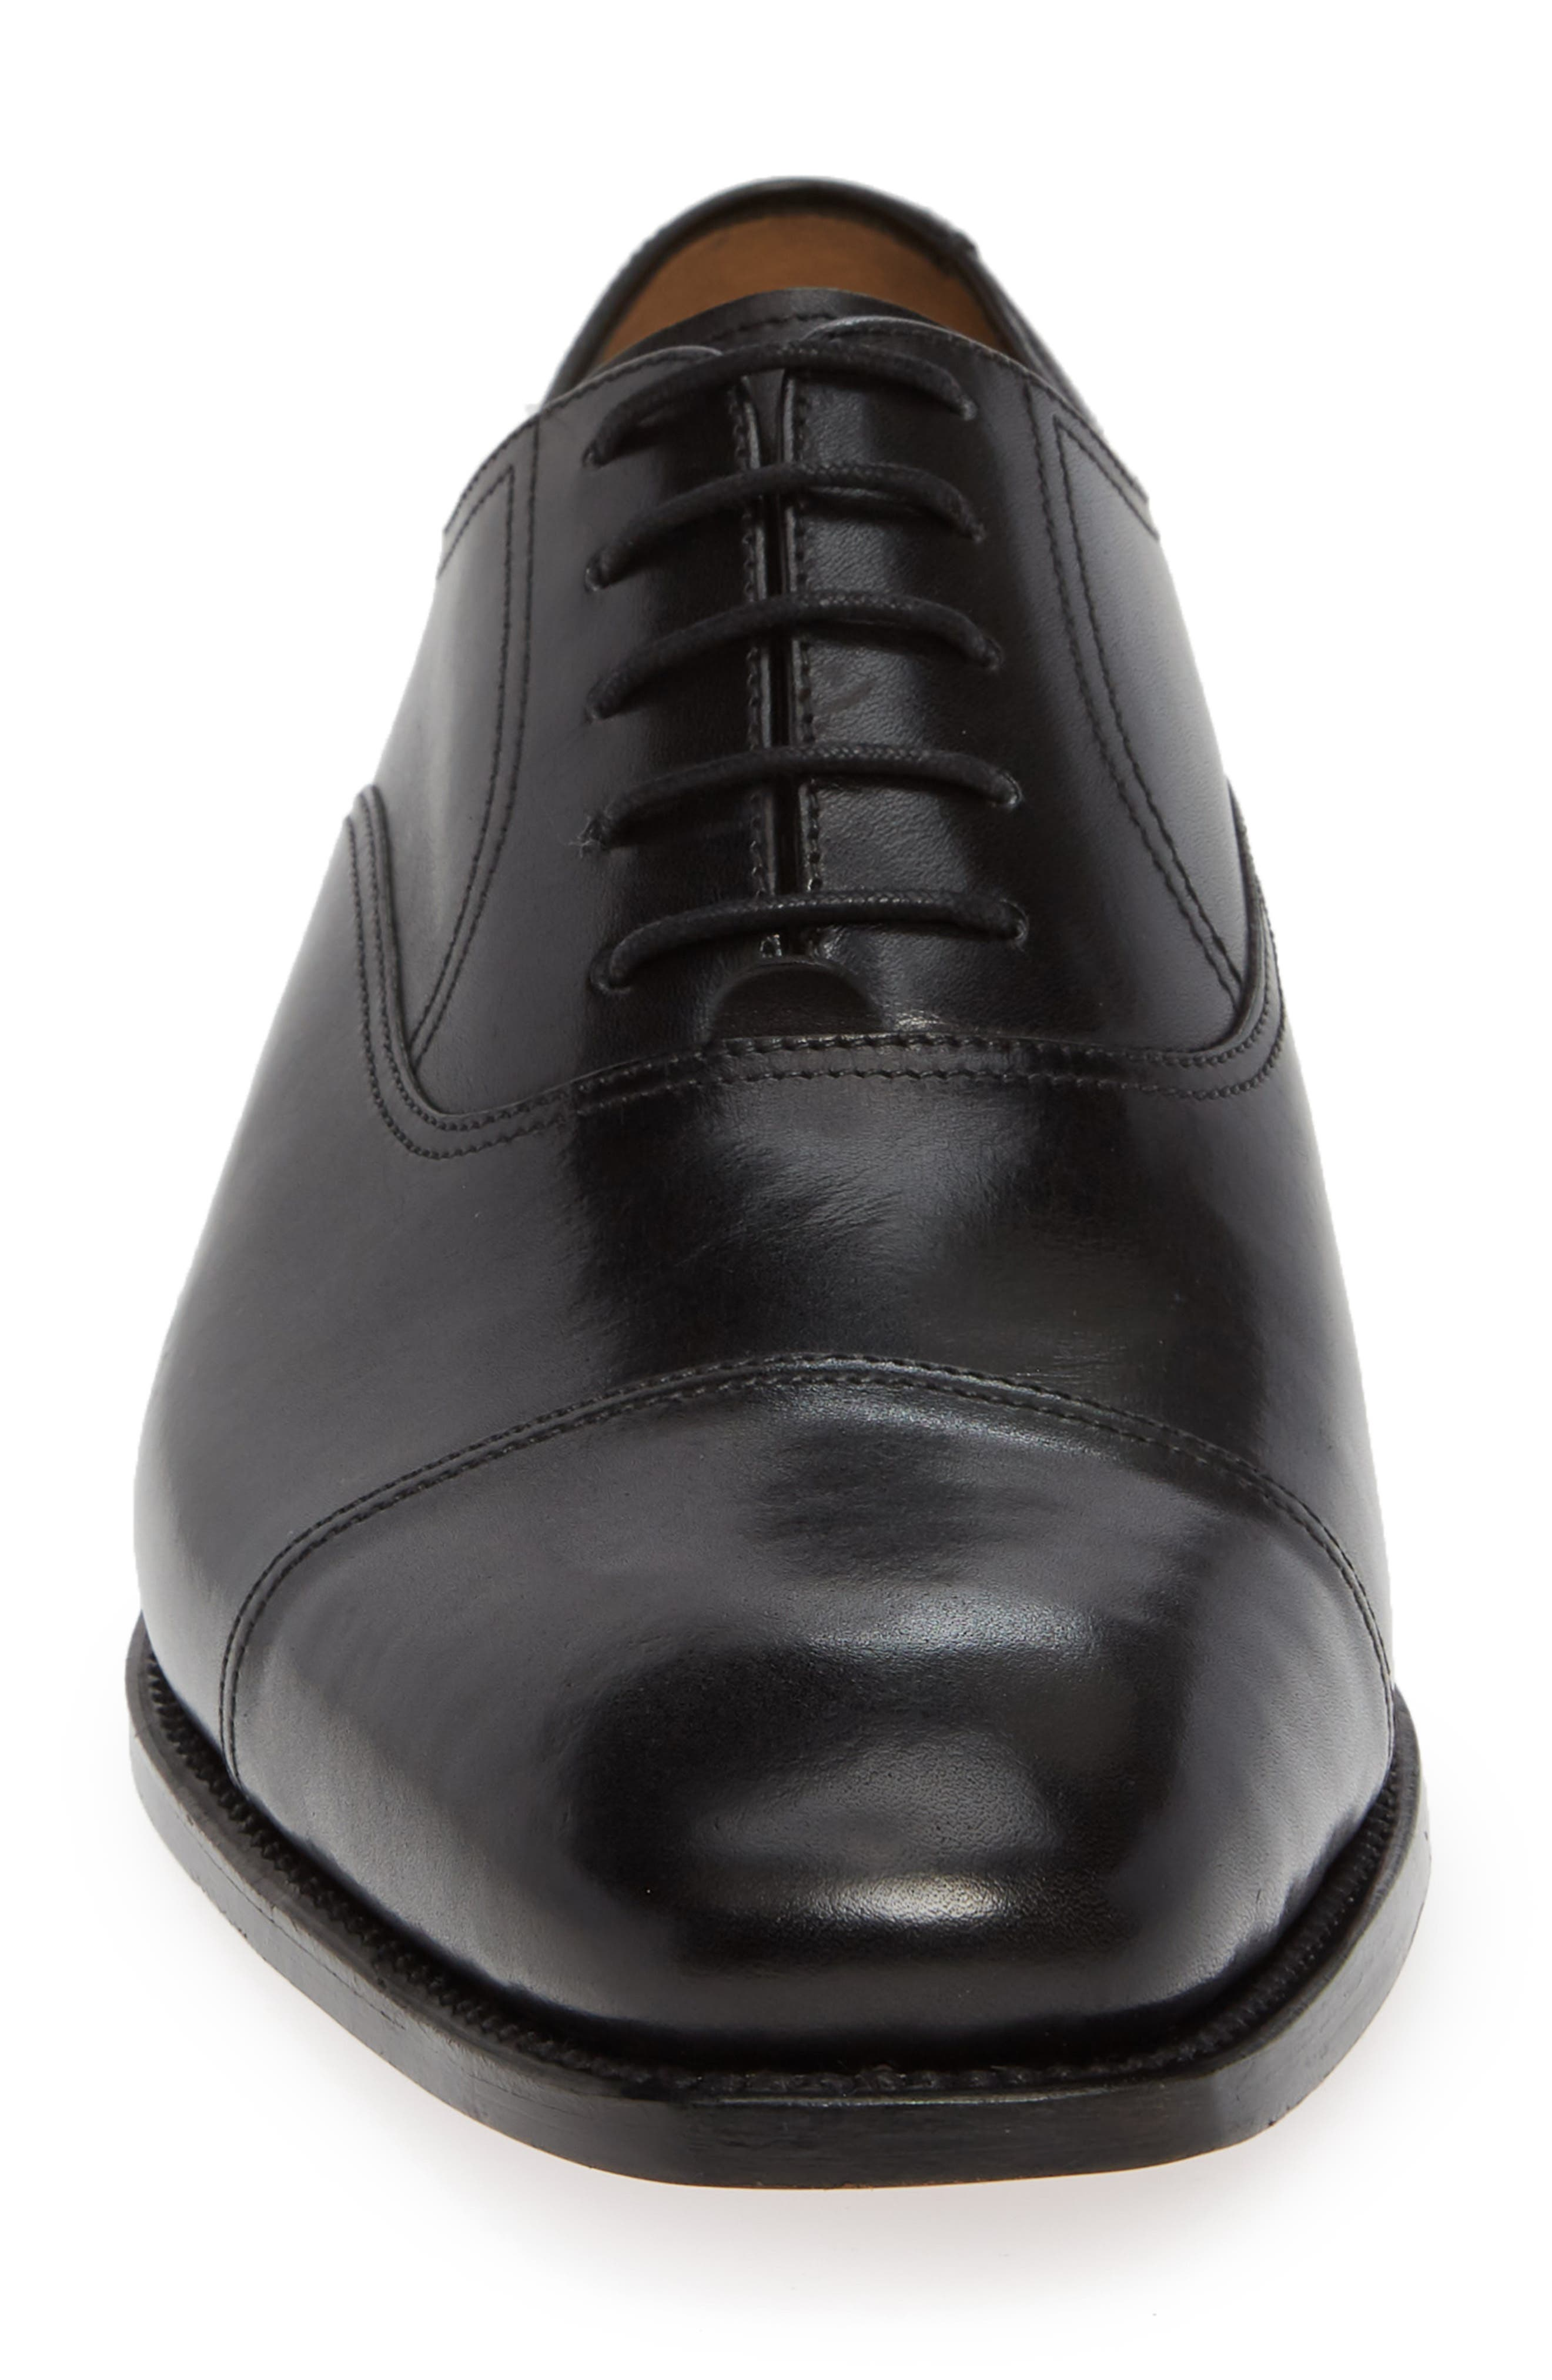 Tiburon Cap Toe Oxford,                             Alternate thumbnail 4, color,                             BLACK LEATHER